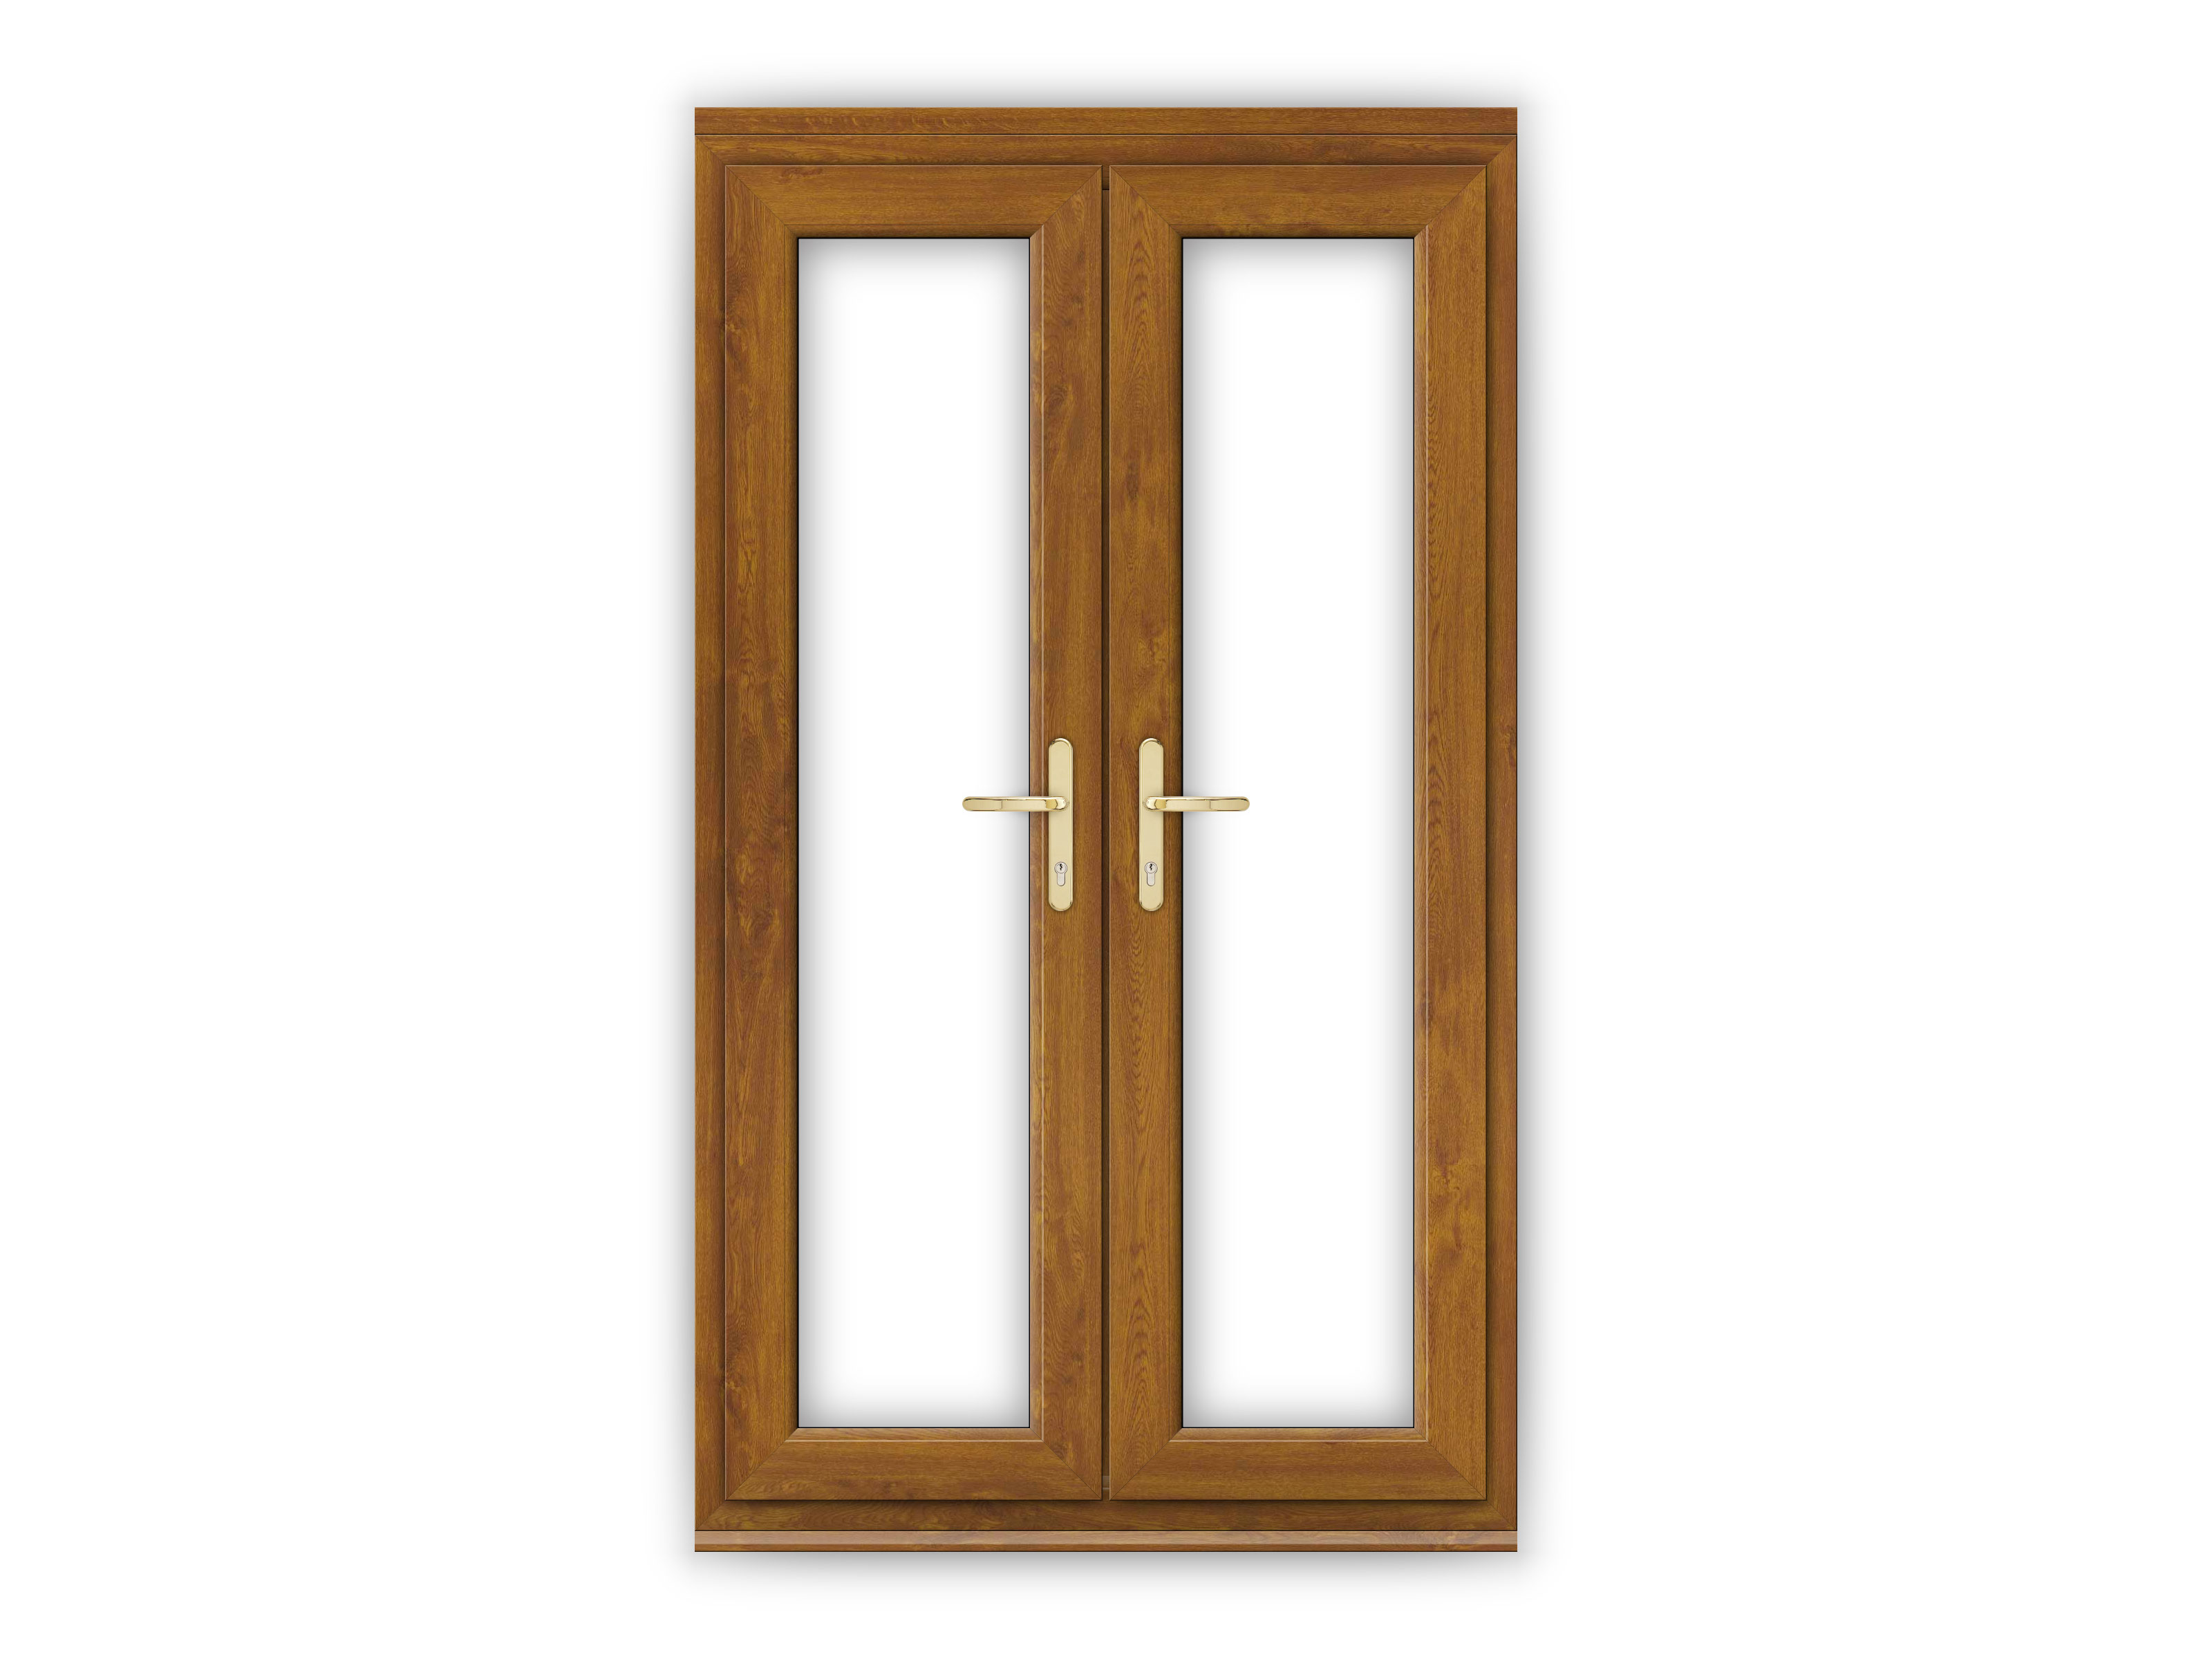 4ft golden oak upvc french doors flying doors for Upvc french doors 1790 x 2090mm